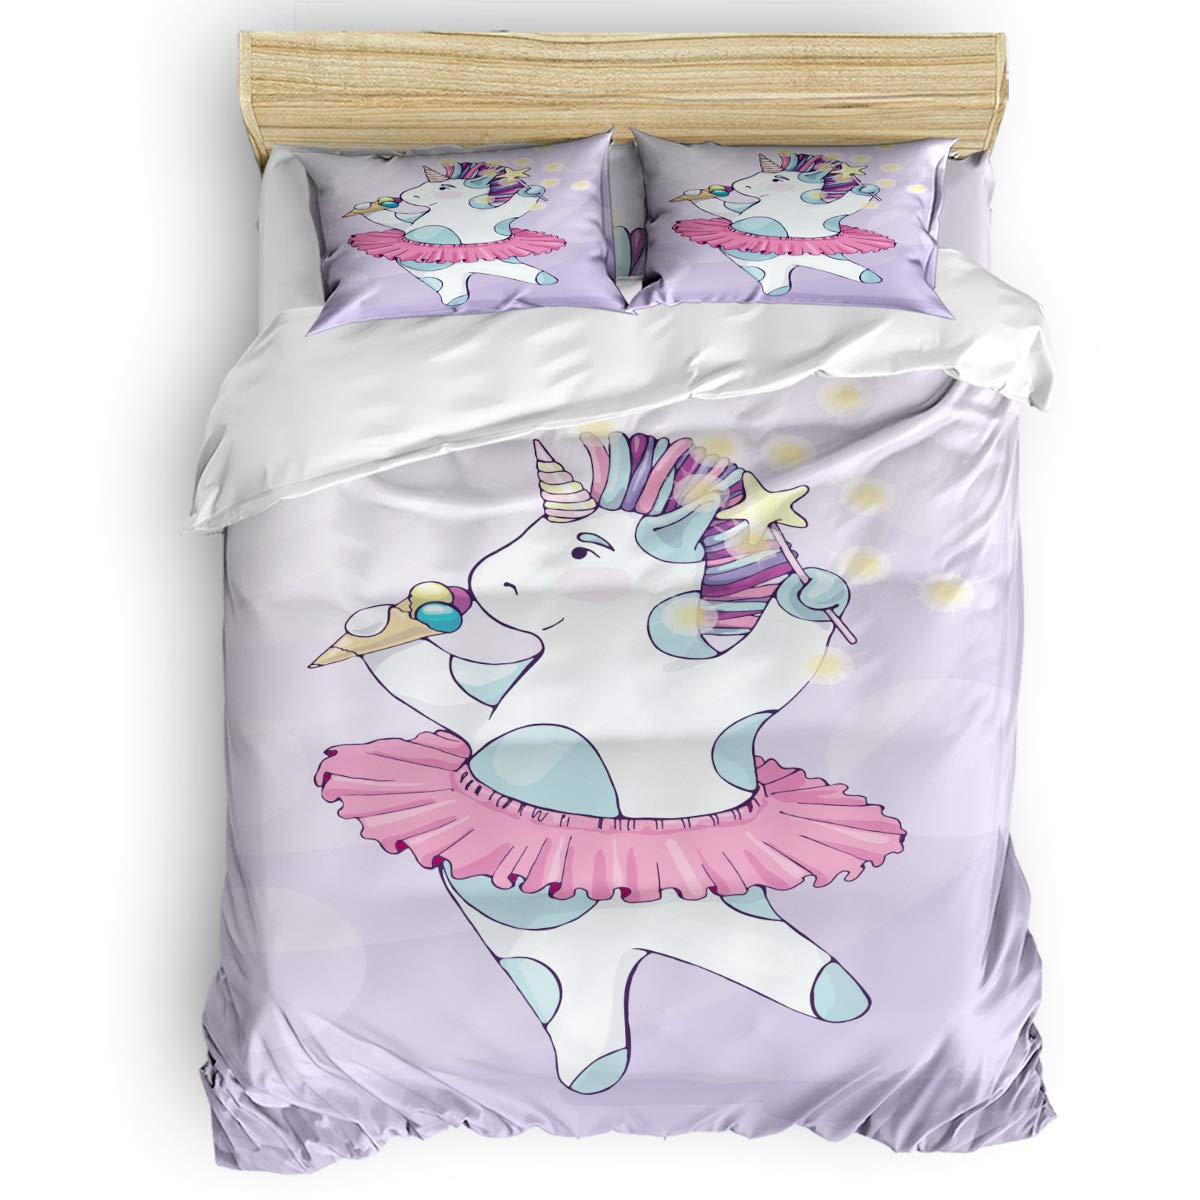 Unicorndancingffy4403 Twin Bedding Set Full Size, Cute Animals Cats and Fish Fun Happy Beings Inspired Design Comforter Cover Sets for All Season